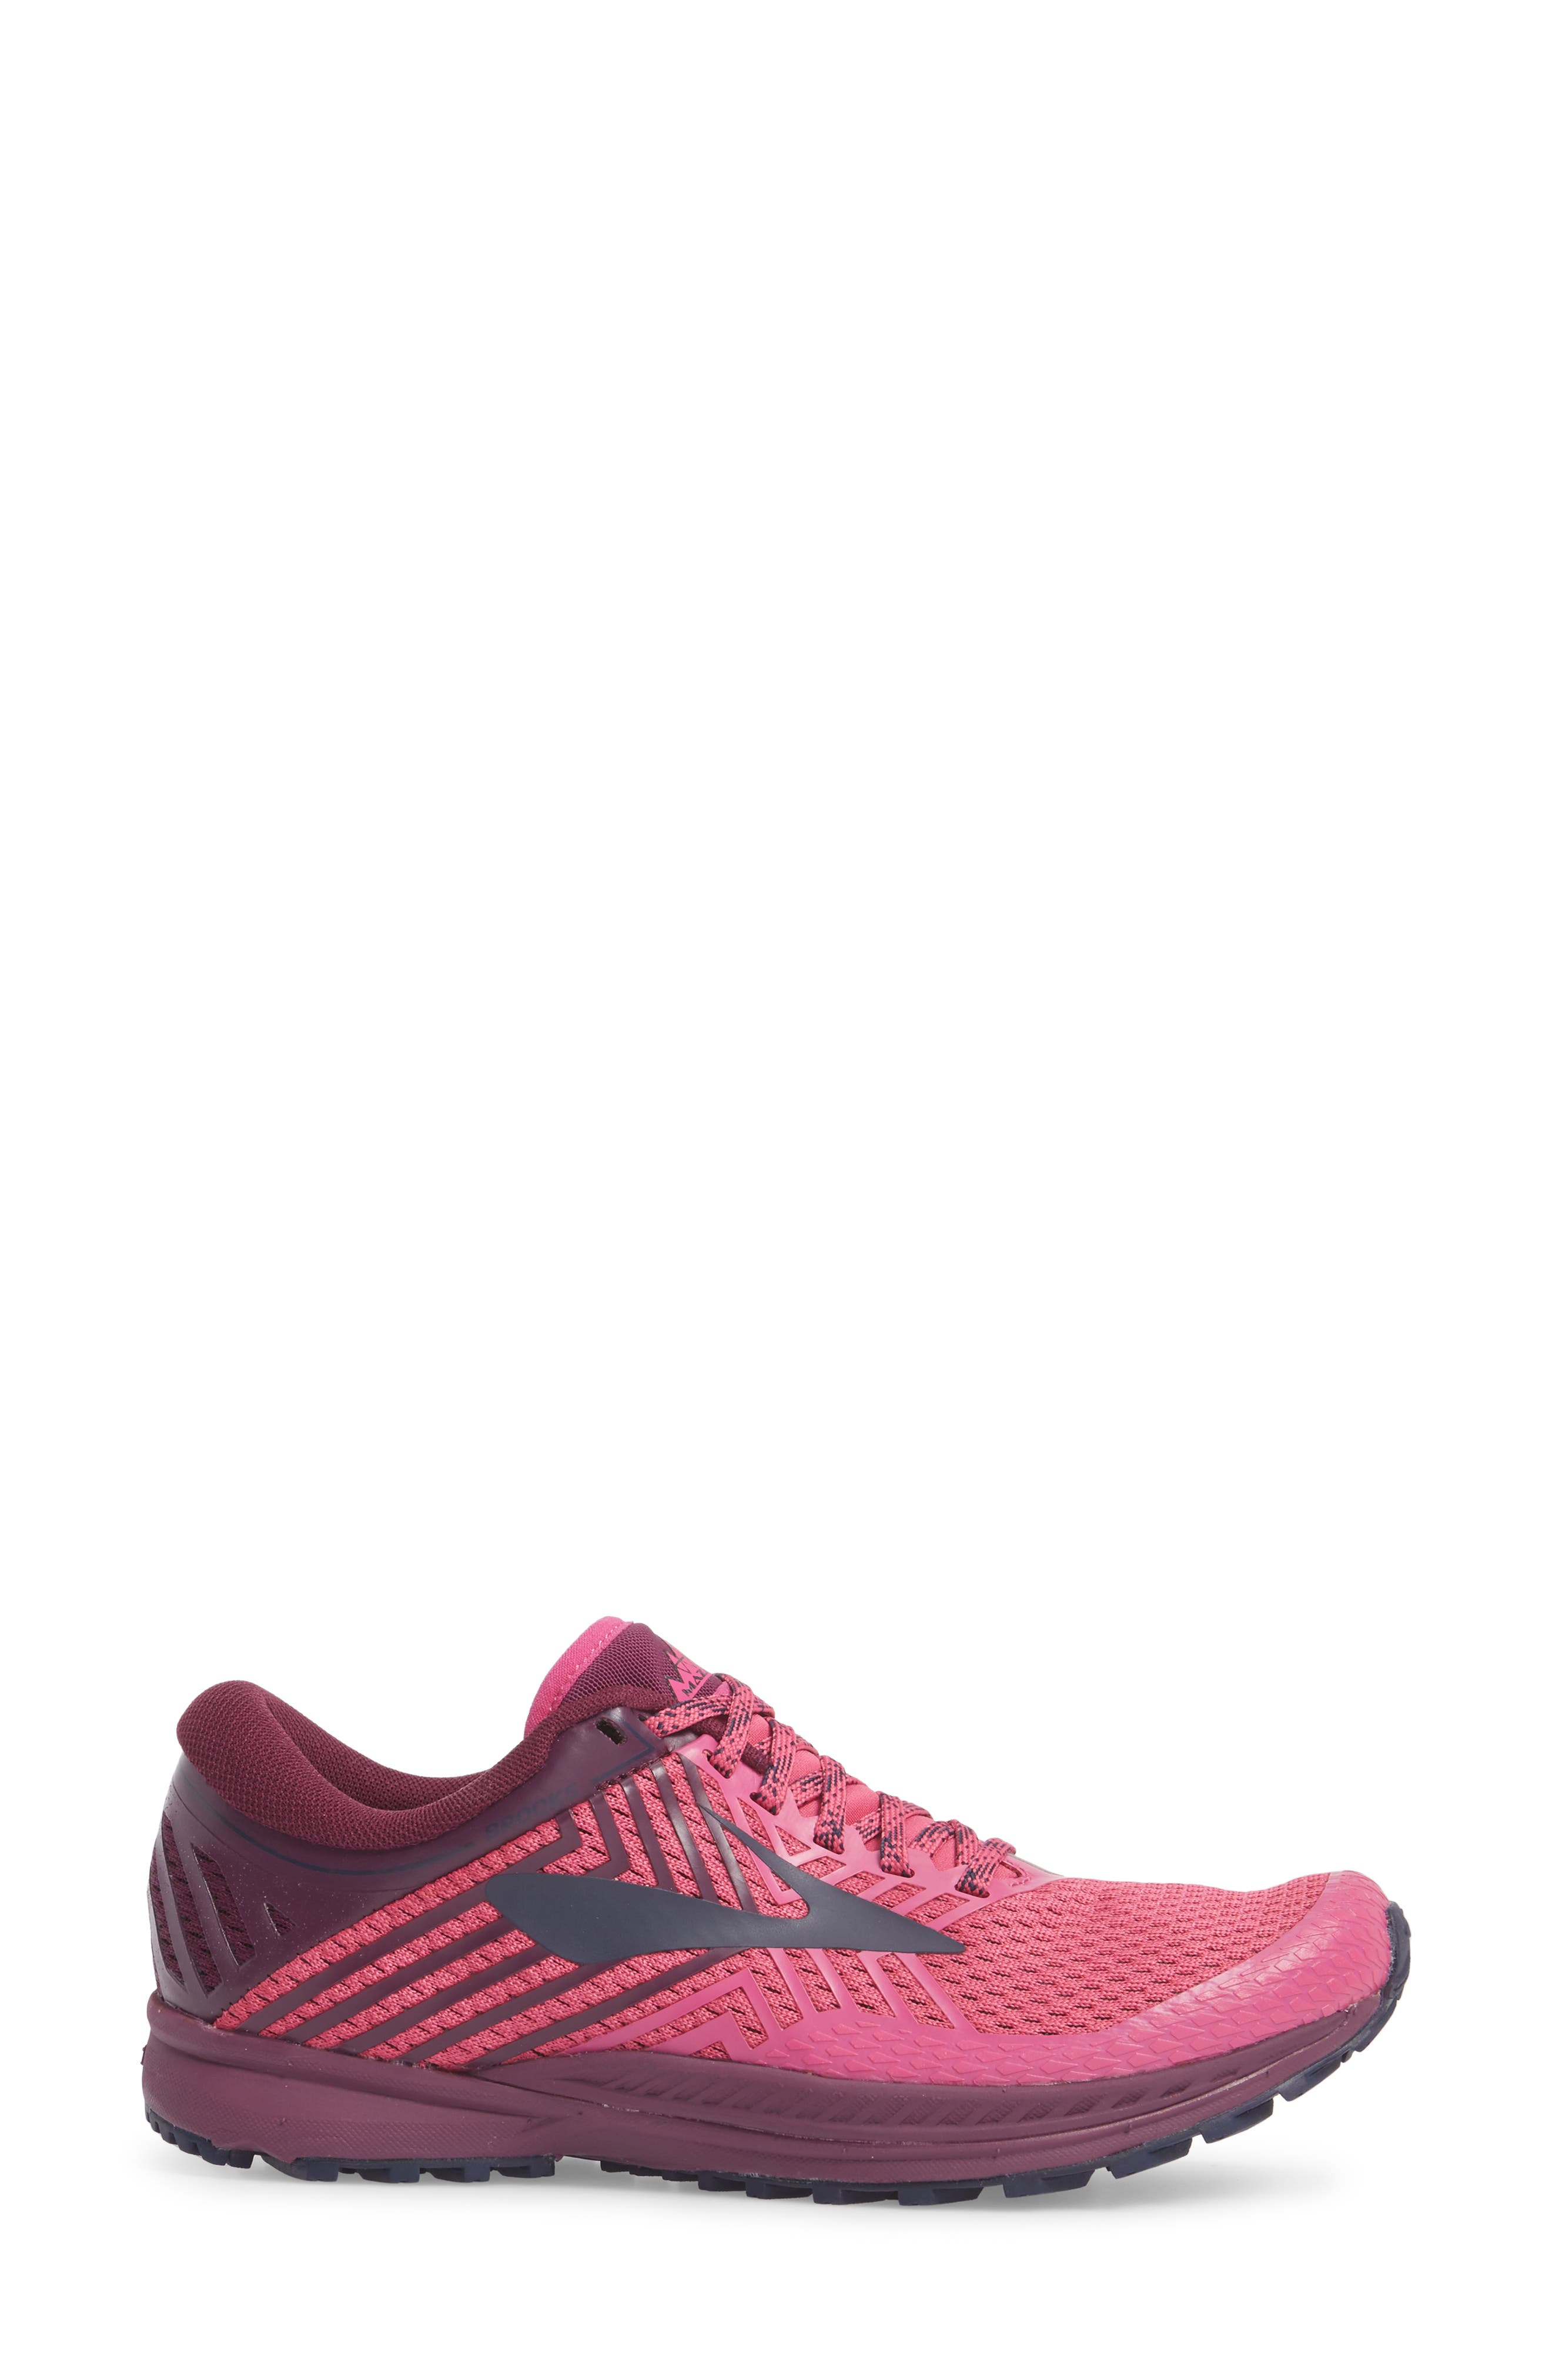 Alternate Image 3  - Brooks Mazama 2 Trail Running Shoe (Women)